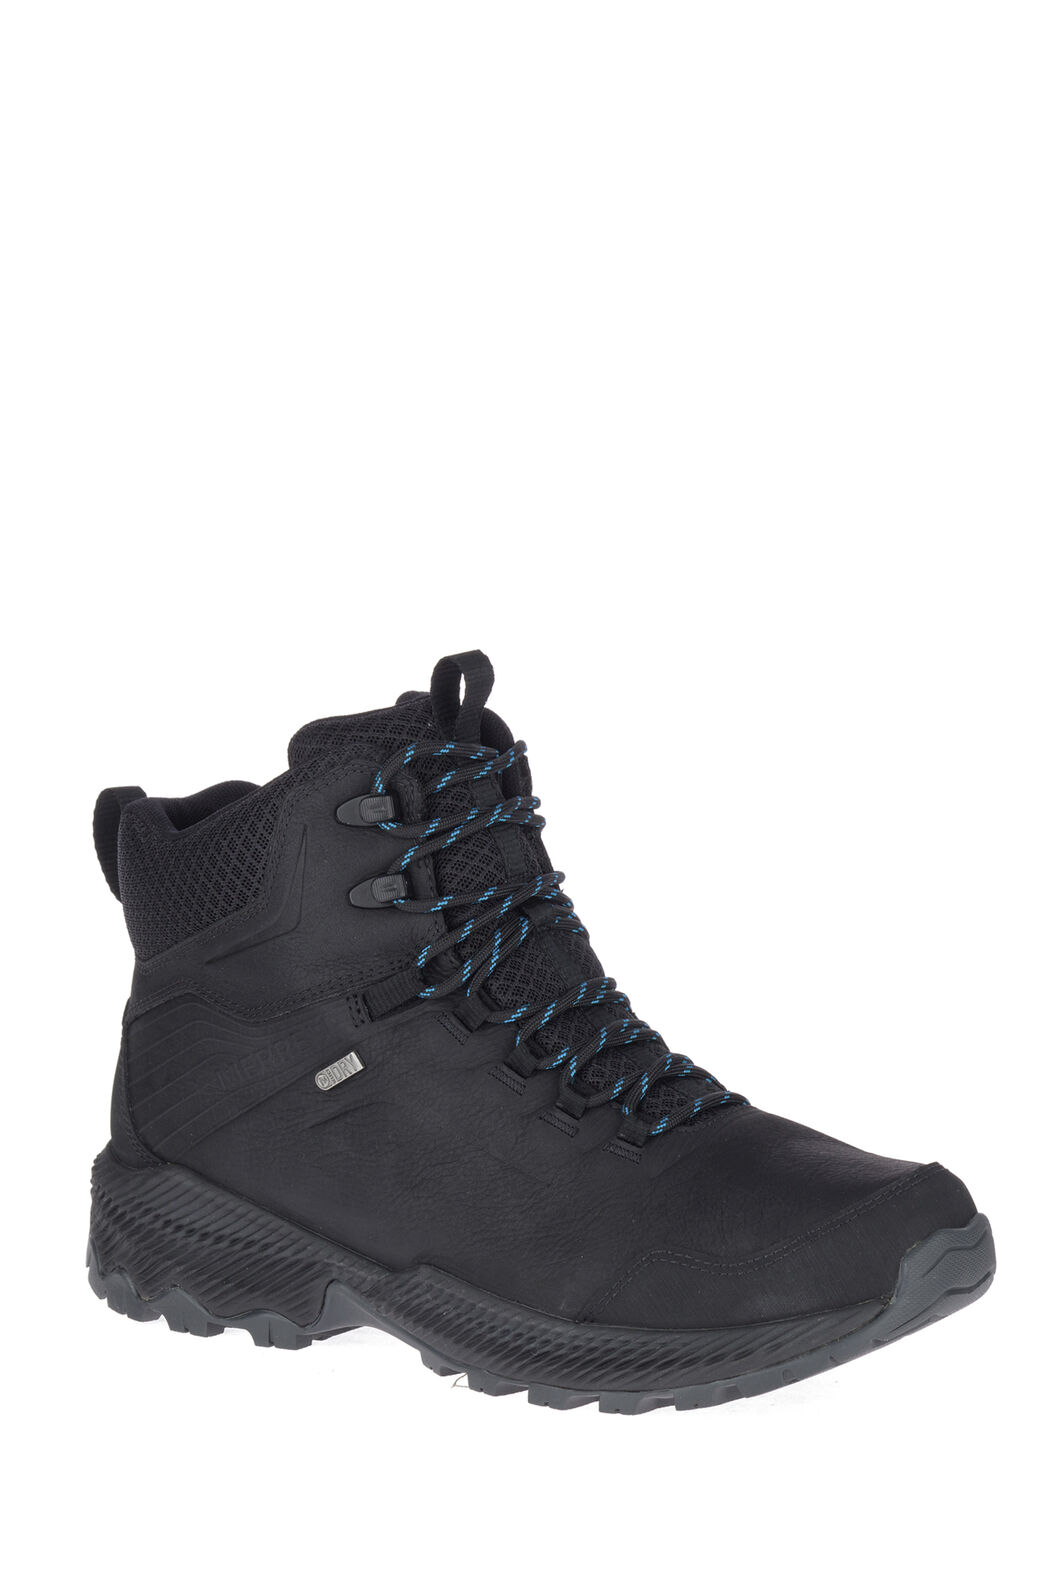 Merrell Men's Forestbound Mid WP Hiking Boots, Black, hi-res